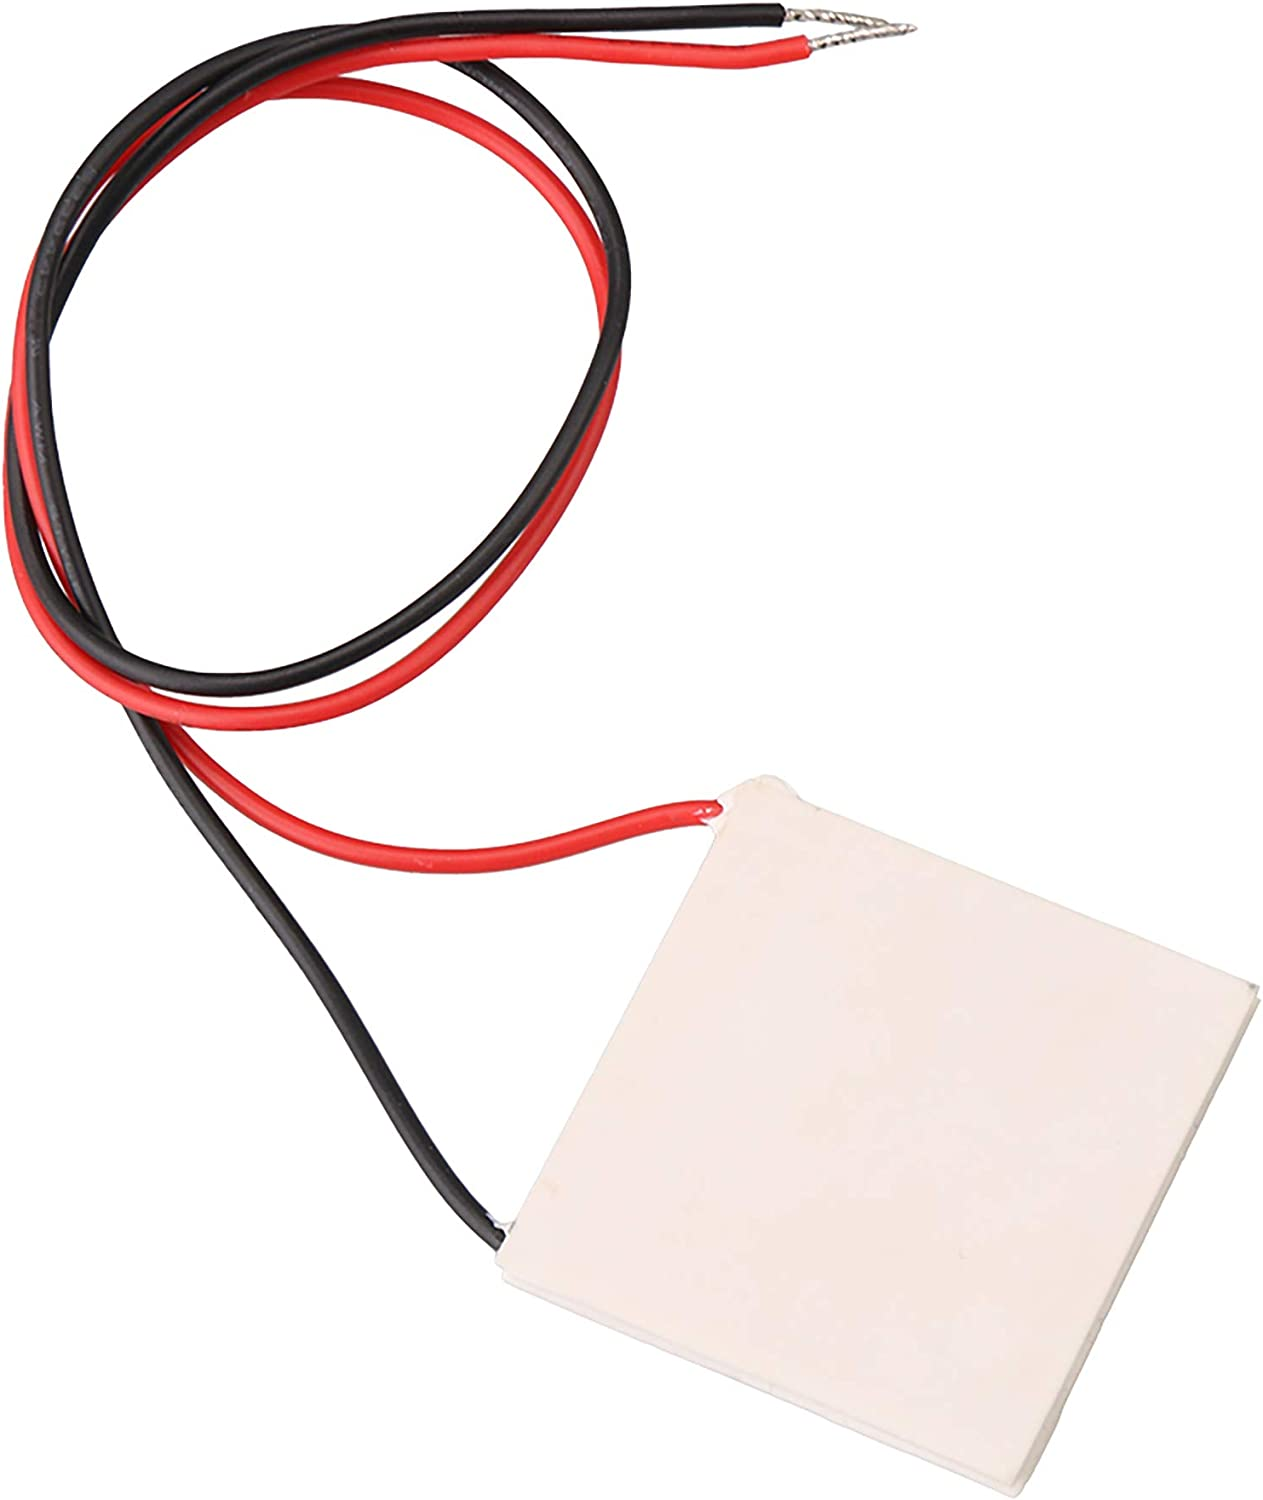 Mxfans 4cm Semiconductor Refrigeration Tablets Thermoelectric Cooler TEs1-12704